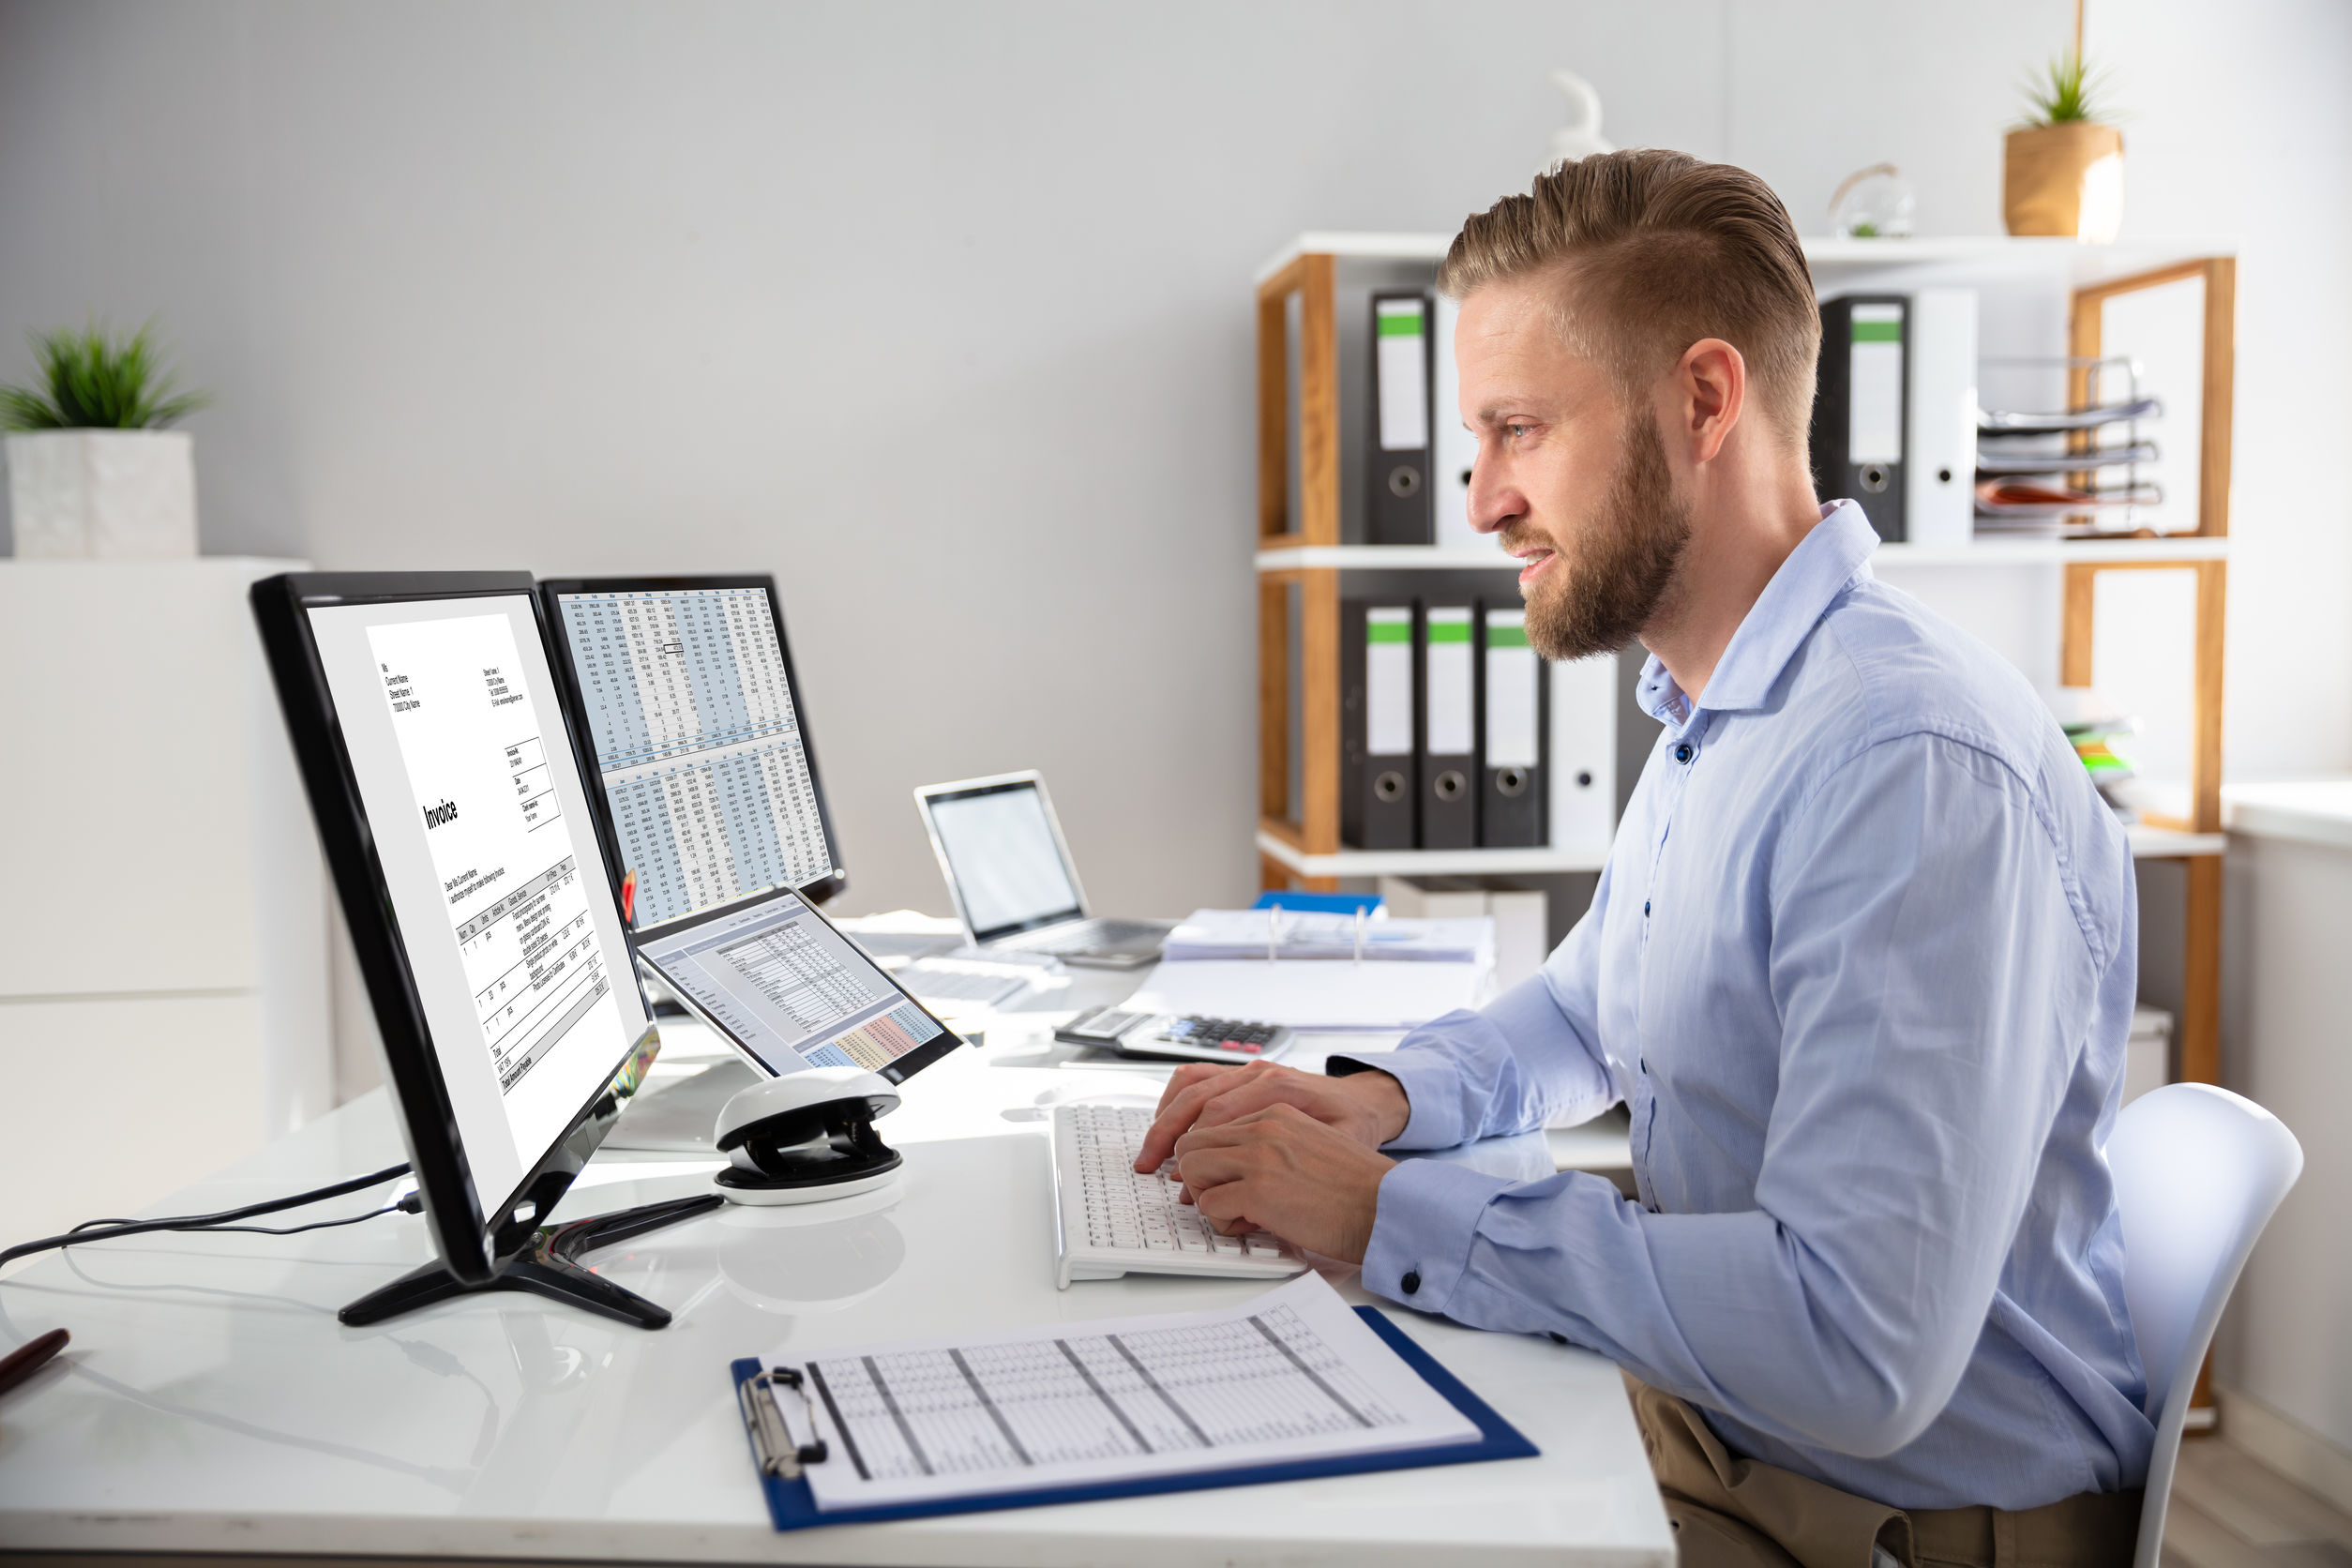 7 Important Features to Look for in a New Accounting Solution